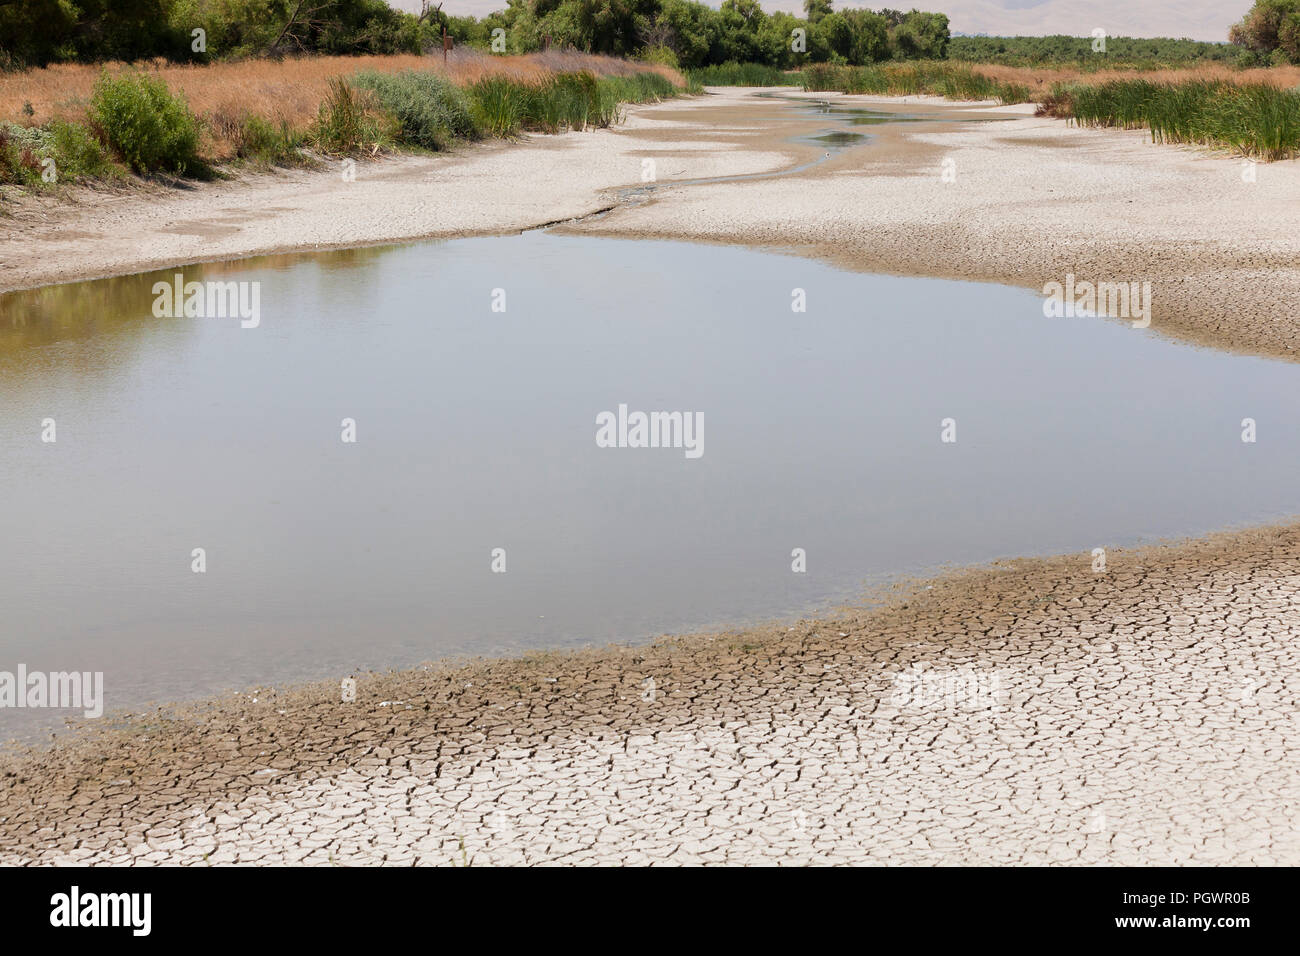 Almost a dry stream bed (aka dry arroyo, dry creek, dry wash, dry gulch) - San Joaquin River National Wildlife Refuge, California USA - Stock Image